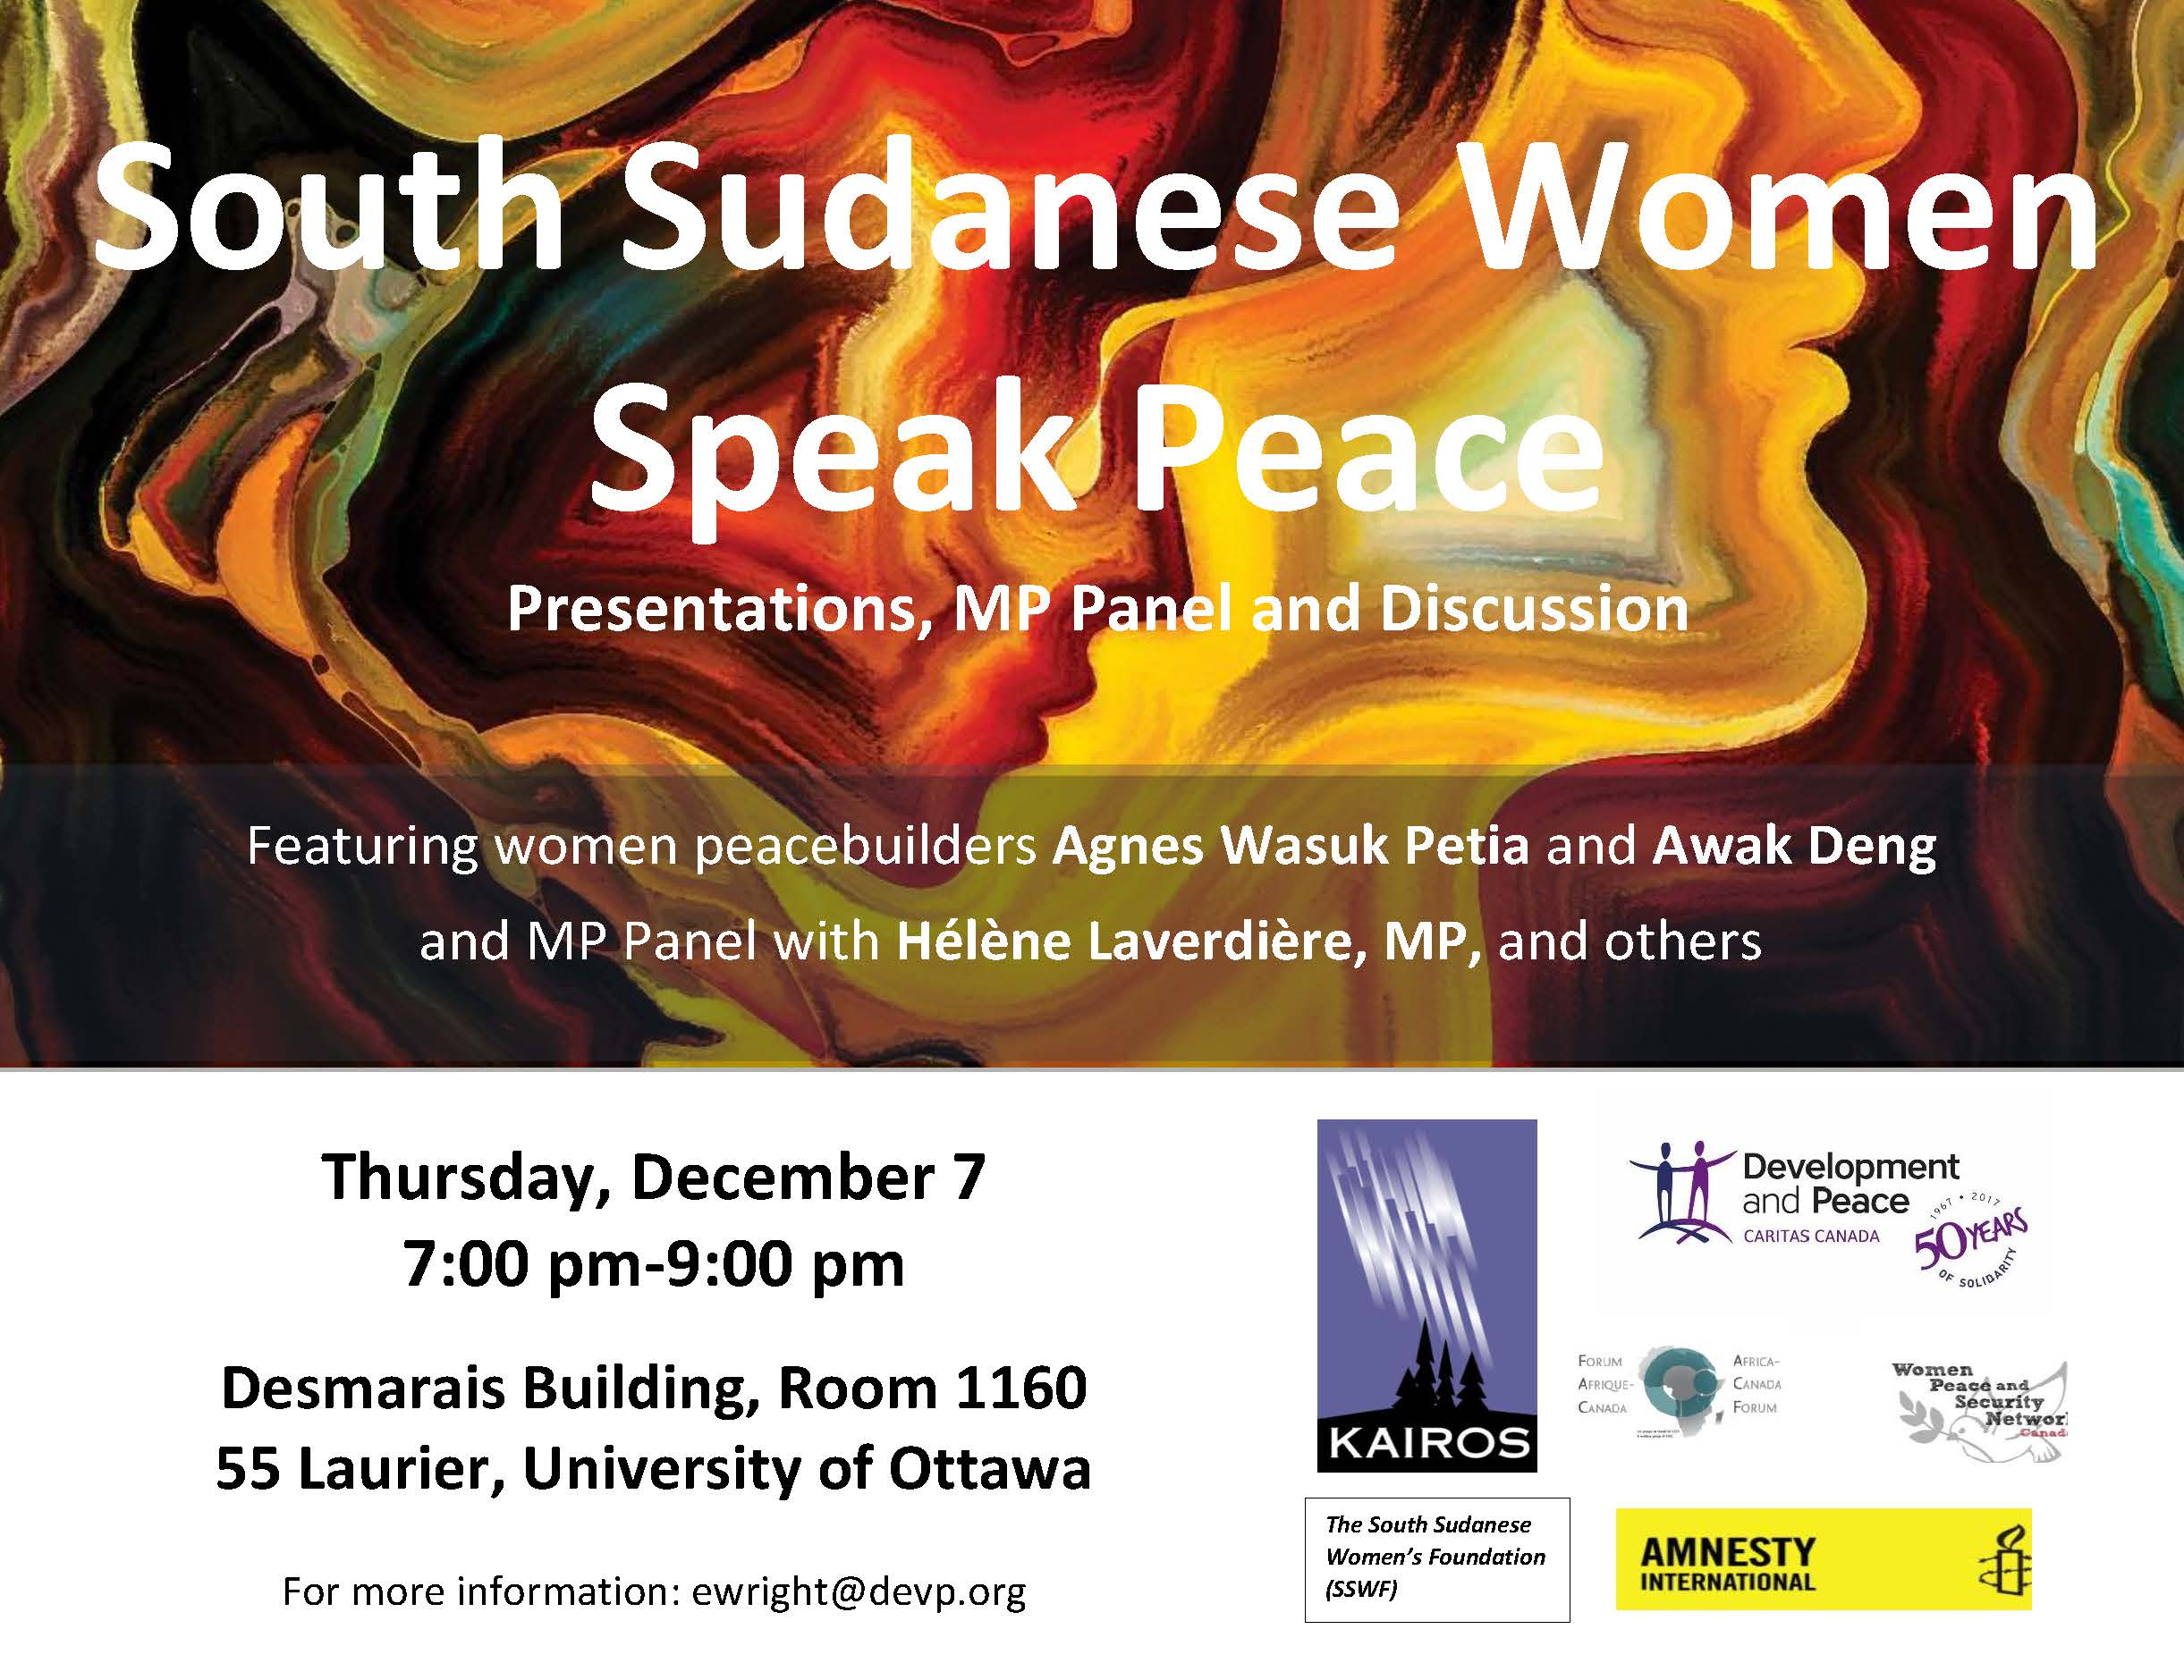 South Sudanese Women Speak Peace